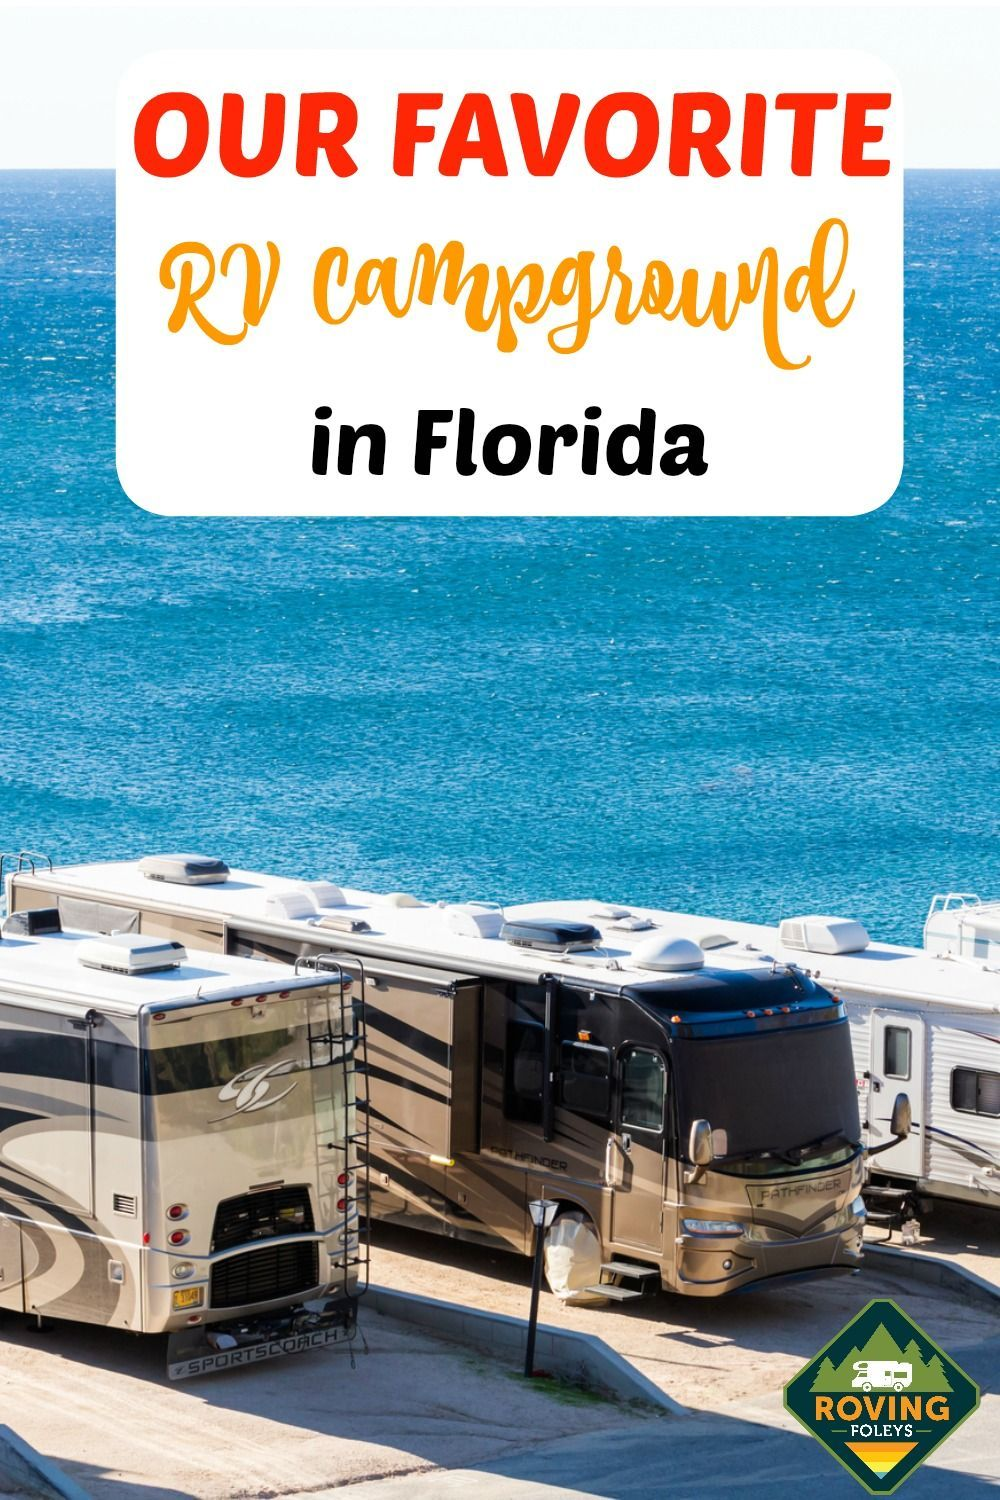 Why We Love Pensacola Beach Rv Resort In Florida With Images Rv Parks In Florida Florida Resorts Rv Parks And Campgrounds